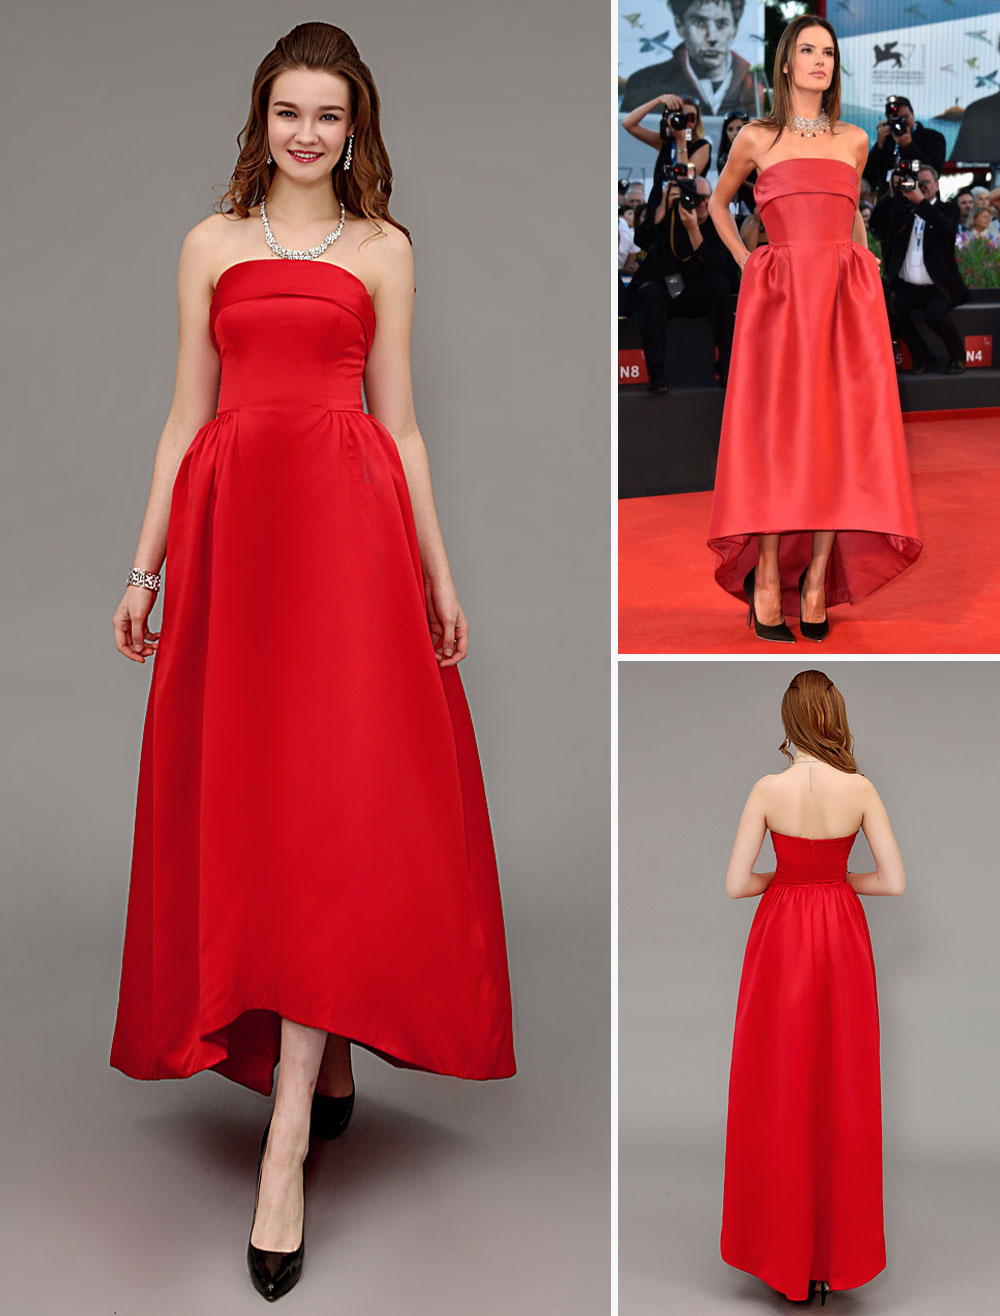 Red Strapless Floor-Length Celebrity Dress with A-Line Satin